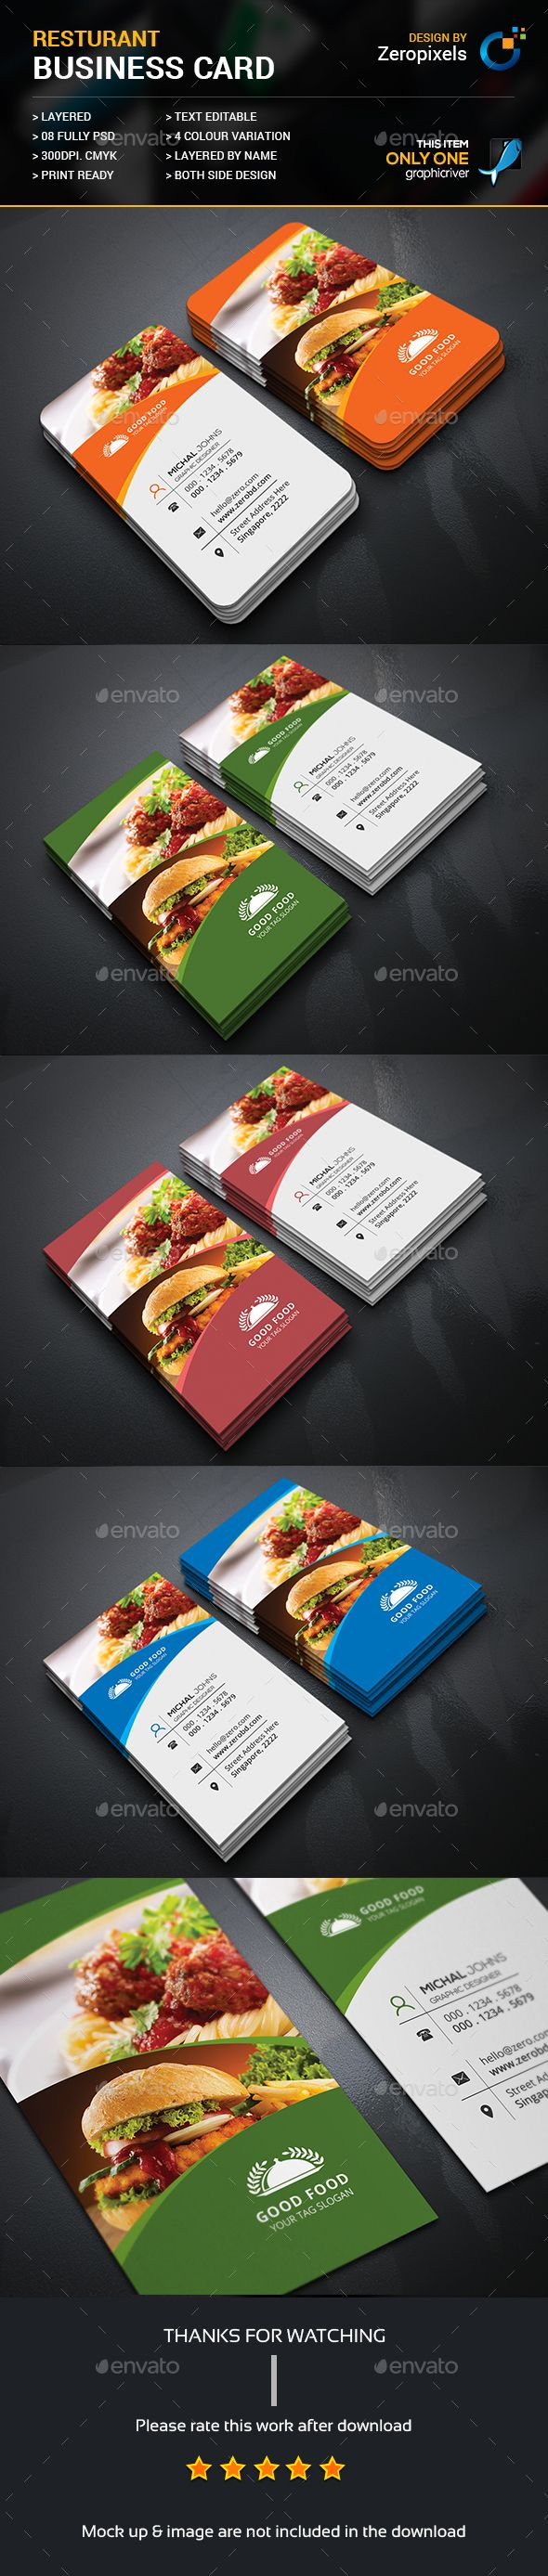 355 best business card images on pinterest business cards